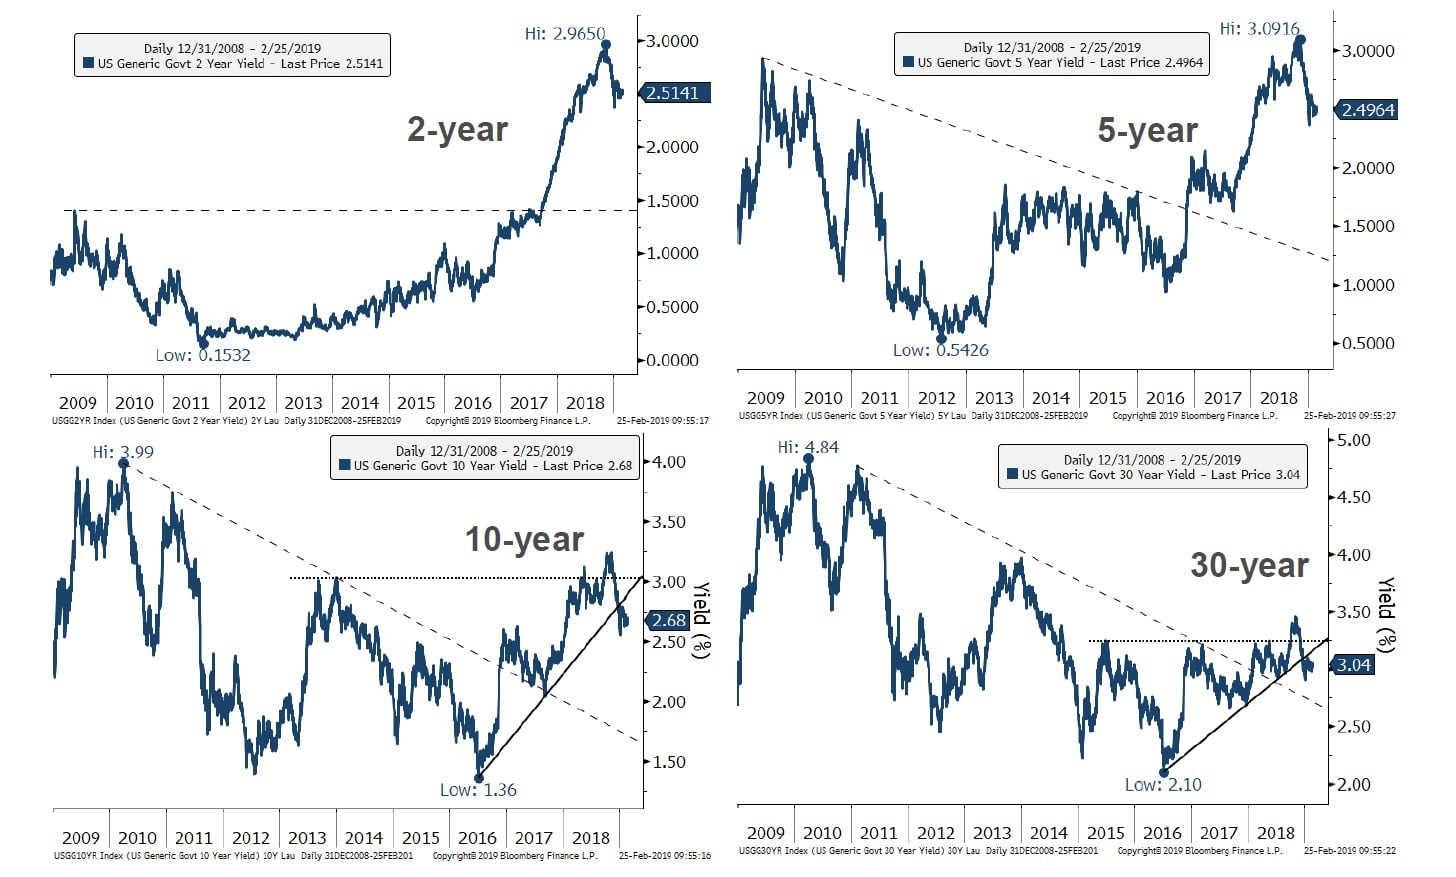 Historical Yield Curve Comparison